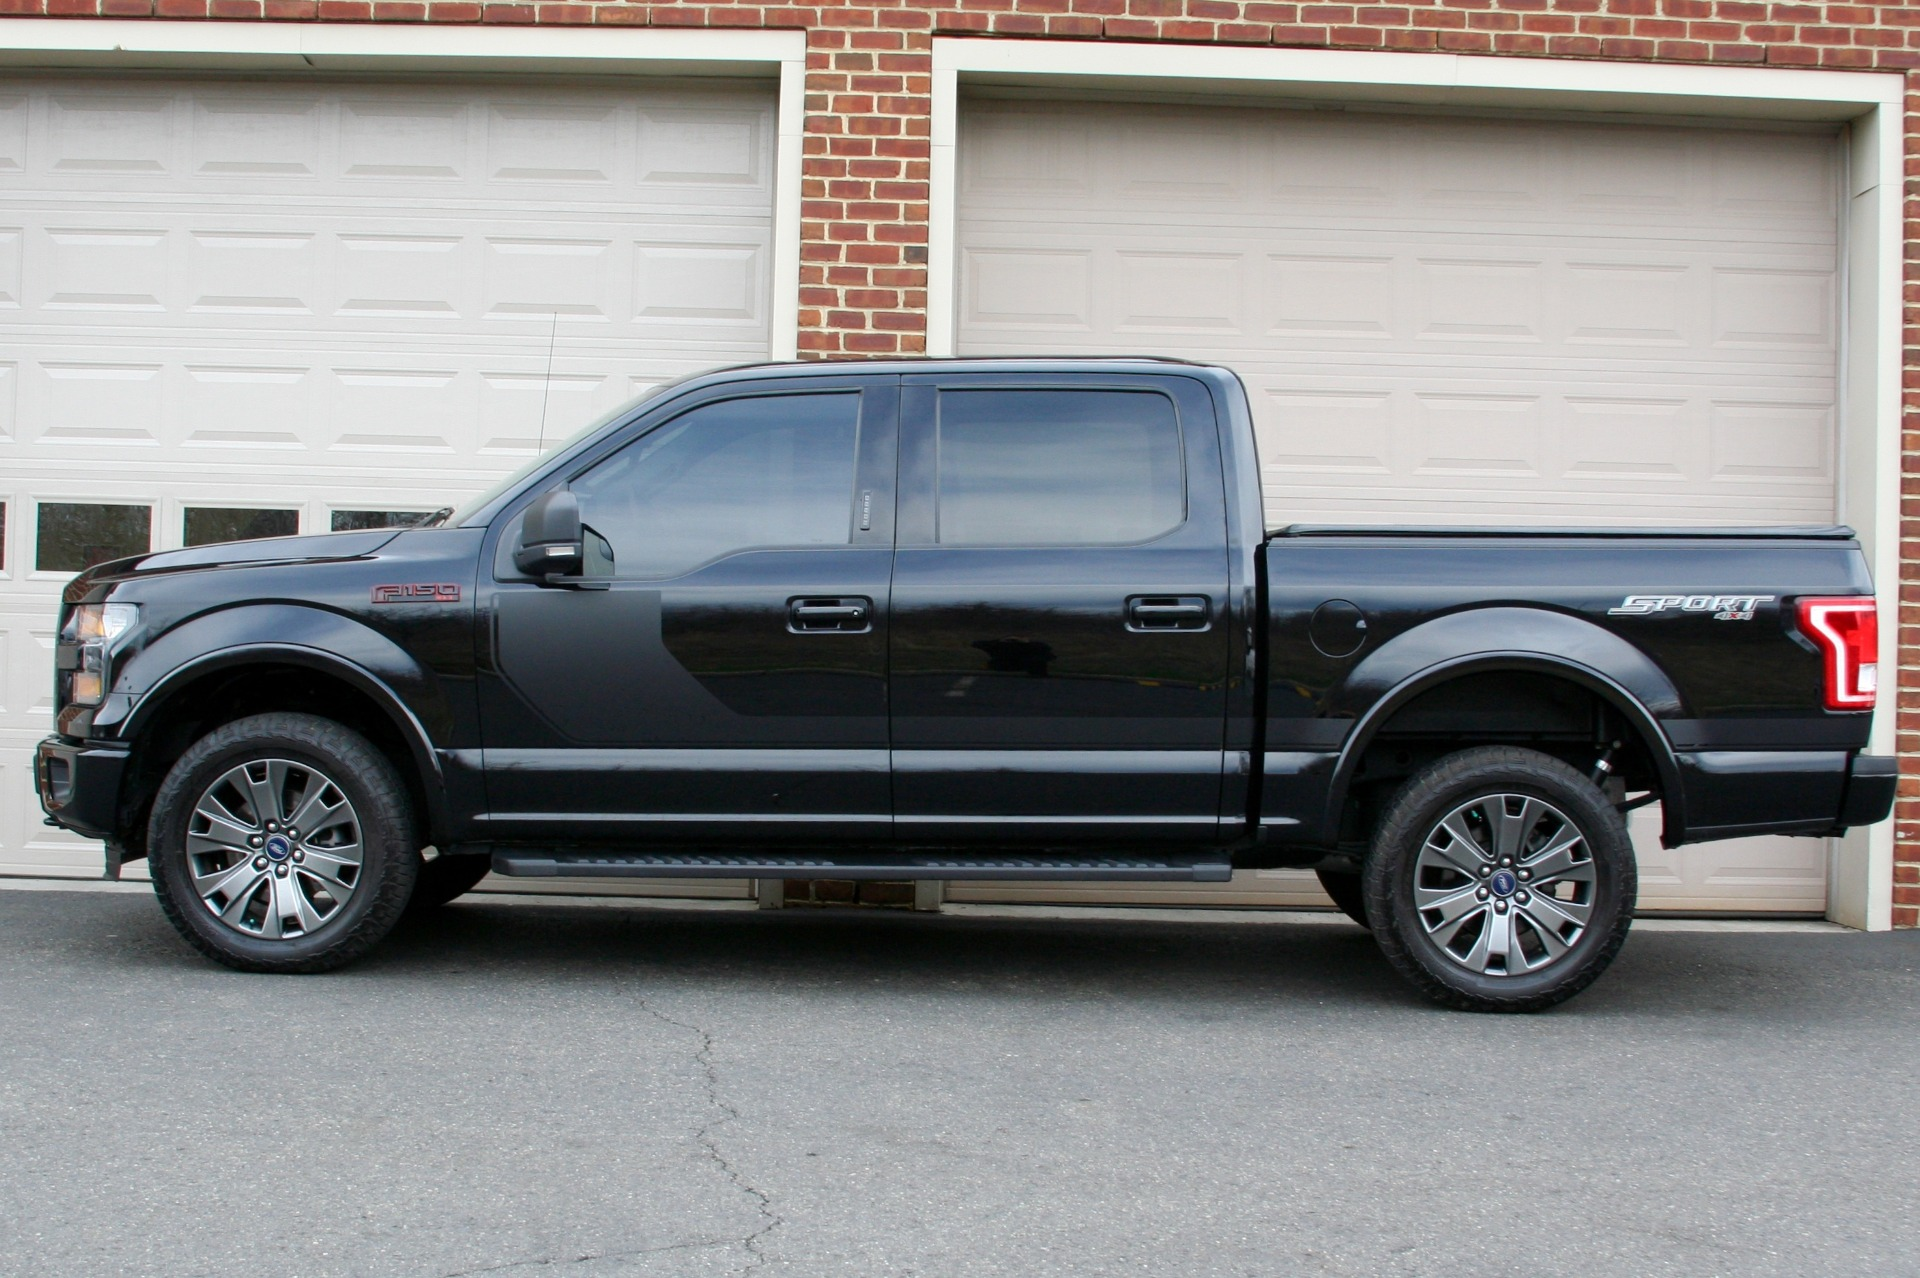 Ford Dealers Nj >> 2016 Ford F-150 XLT Sport Stock # A90775 for sale near ...